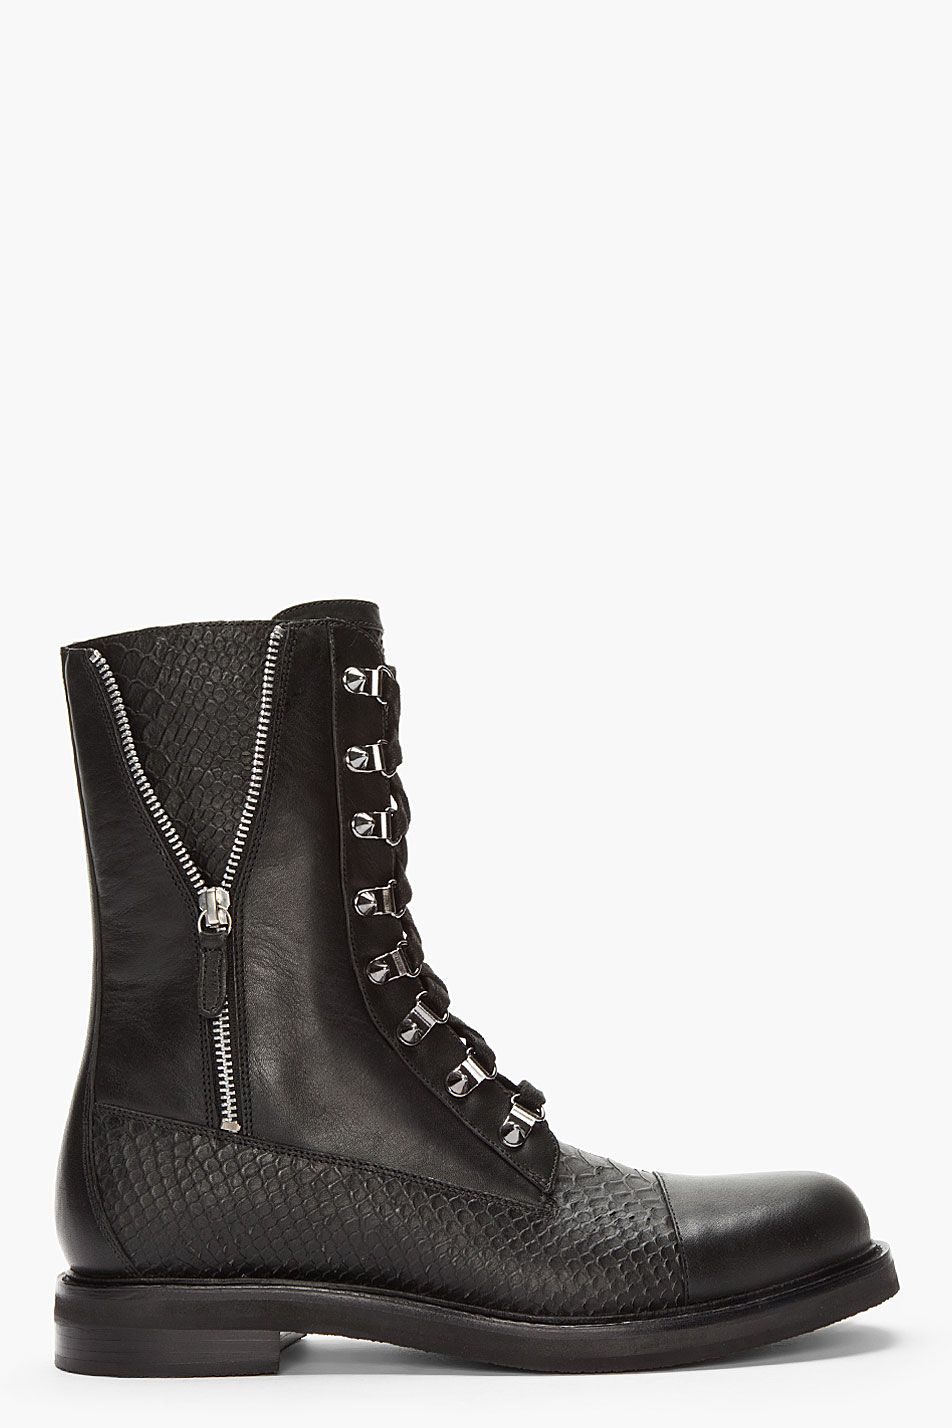 20182017 Boots Madden Girl Womens Holywood Boot Outlet York